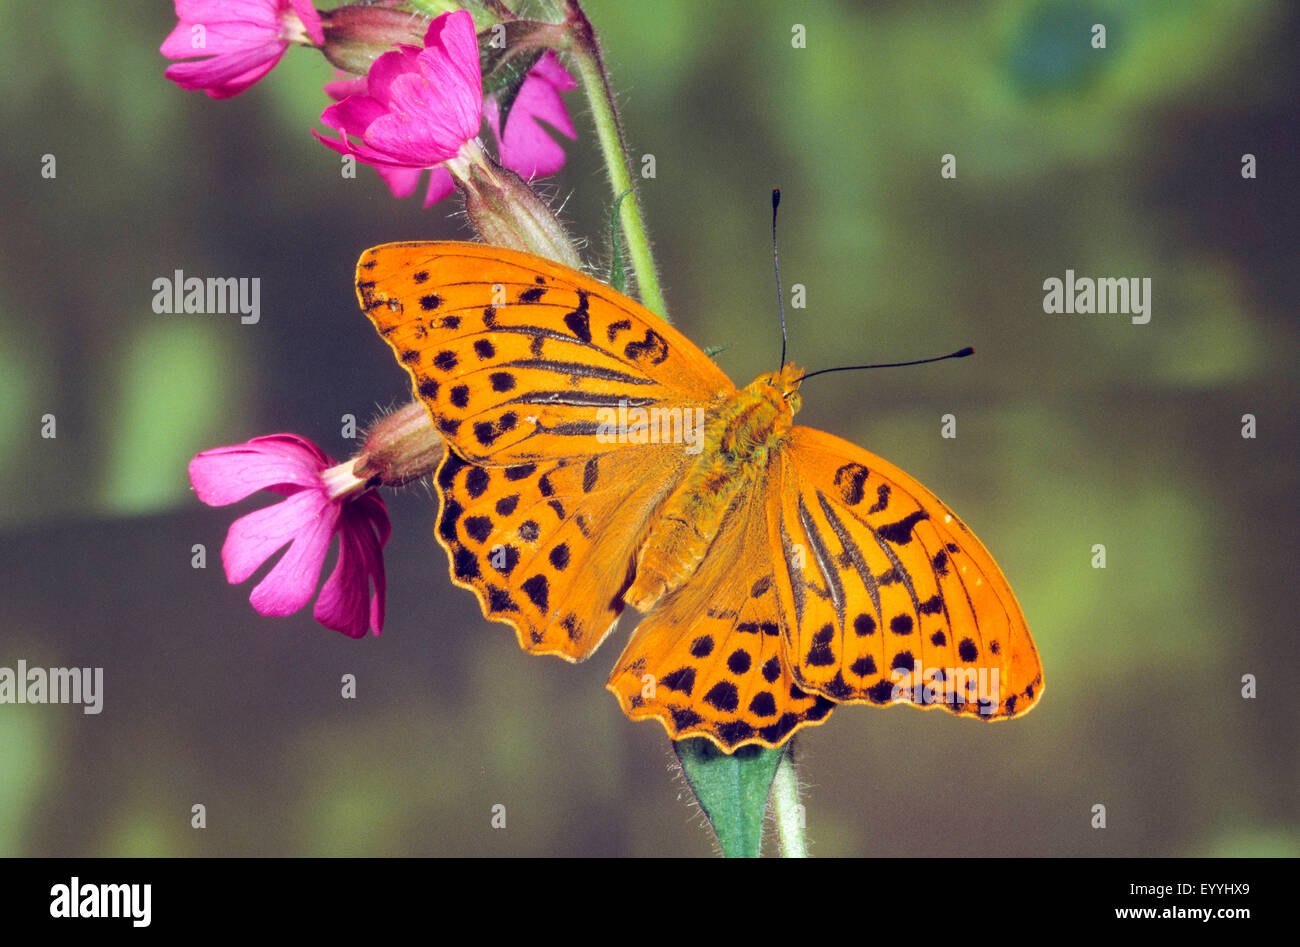 silver-washed fritillary (Argynnis paphia), male at a blooming stem, Germany - Stock Image